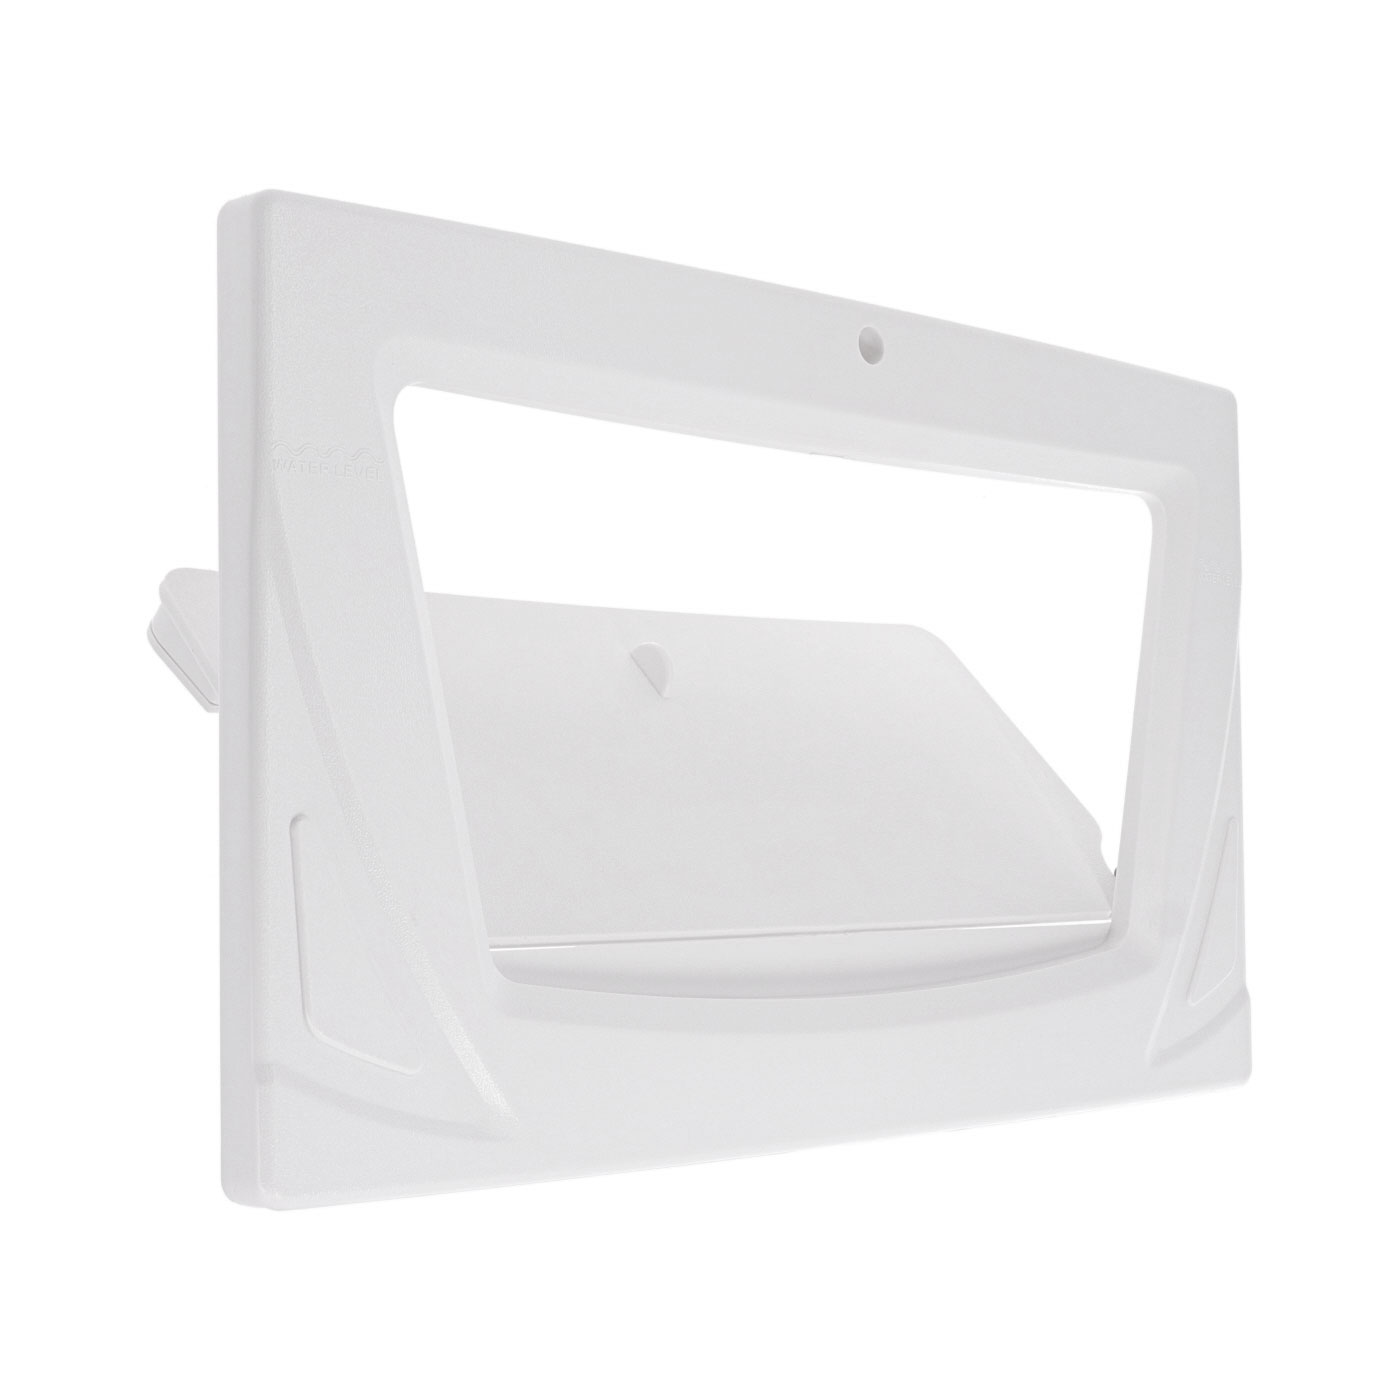 Faceplate and shutter for LVJ L-2111 skimmers